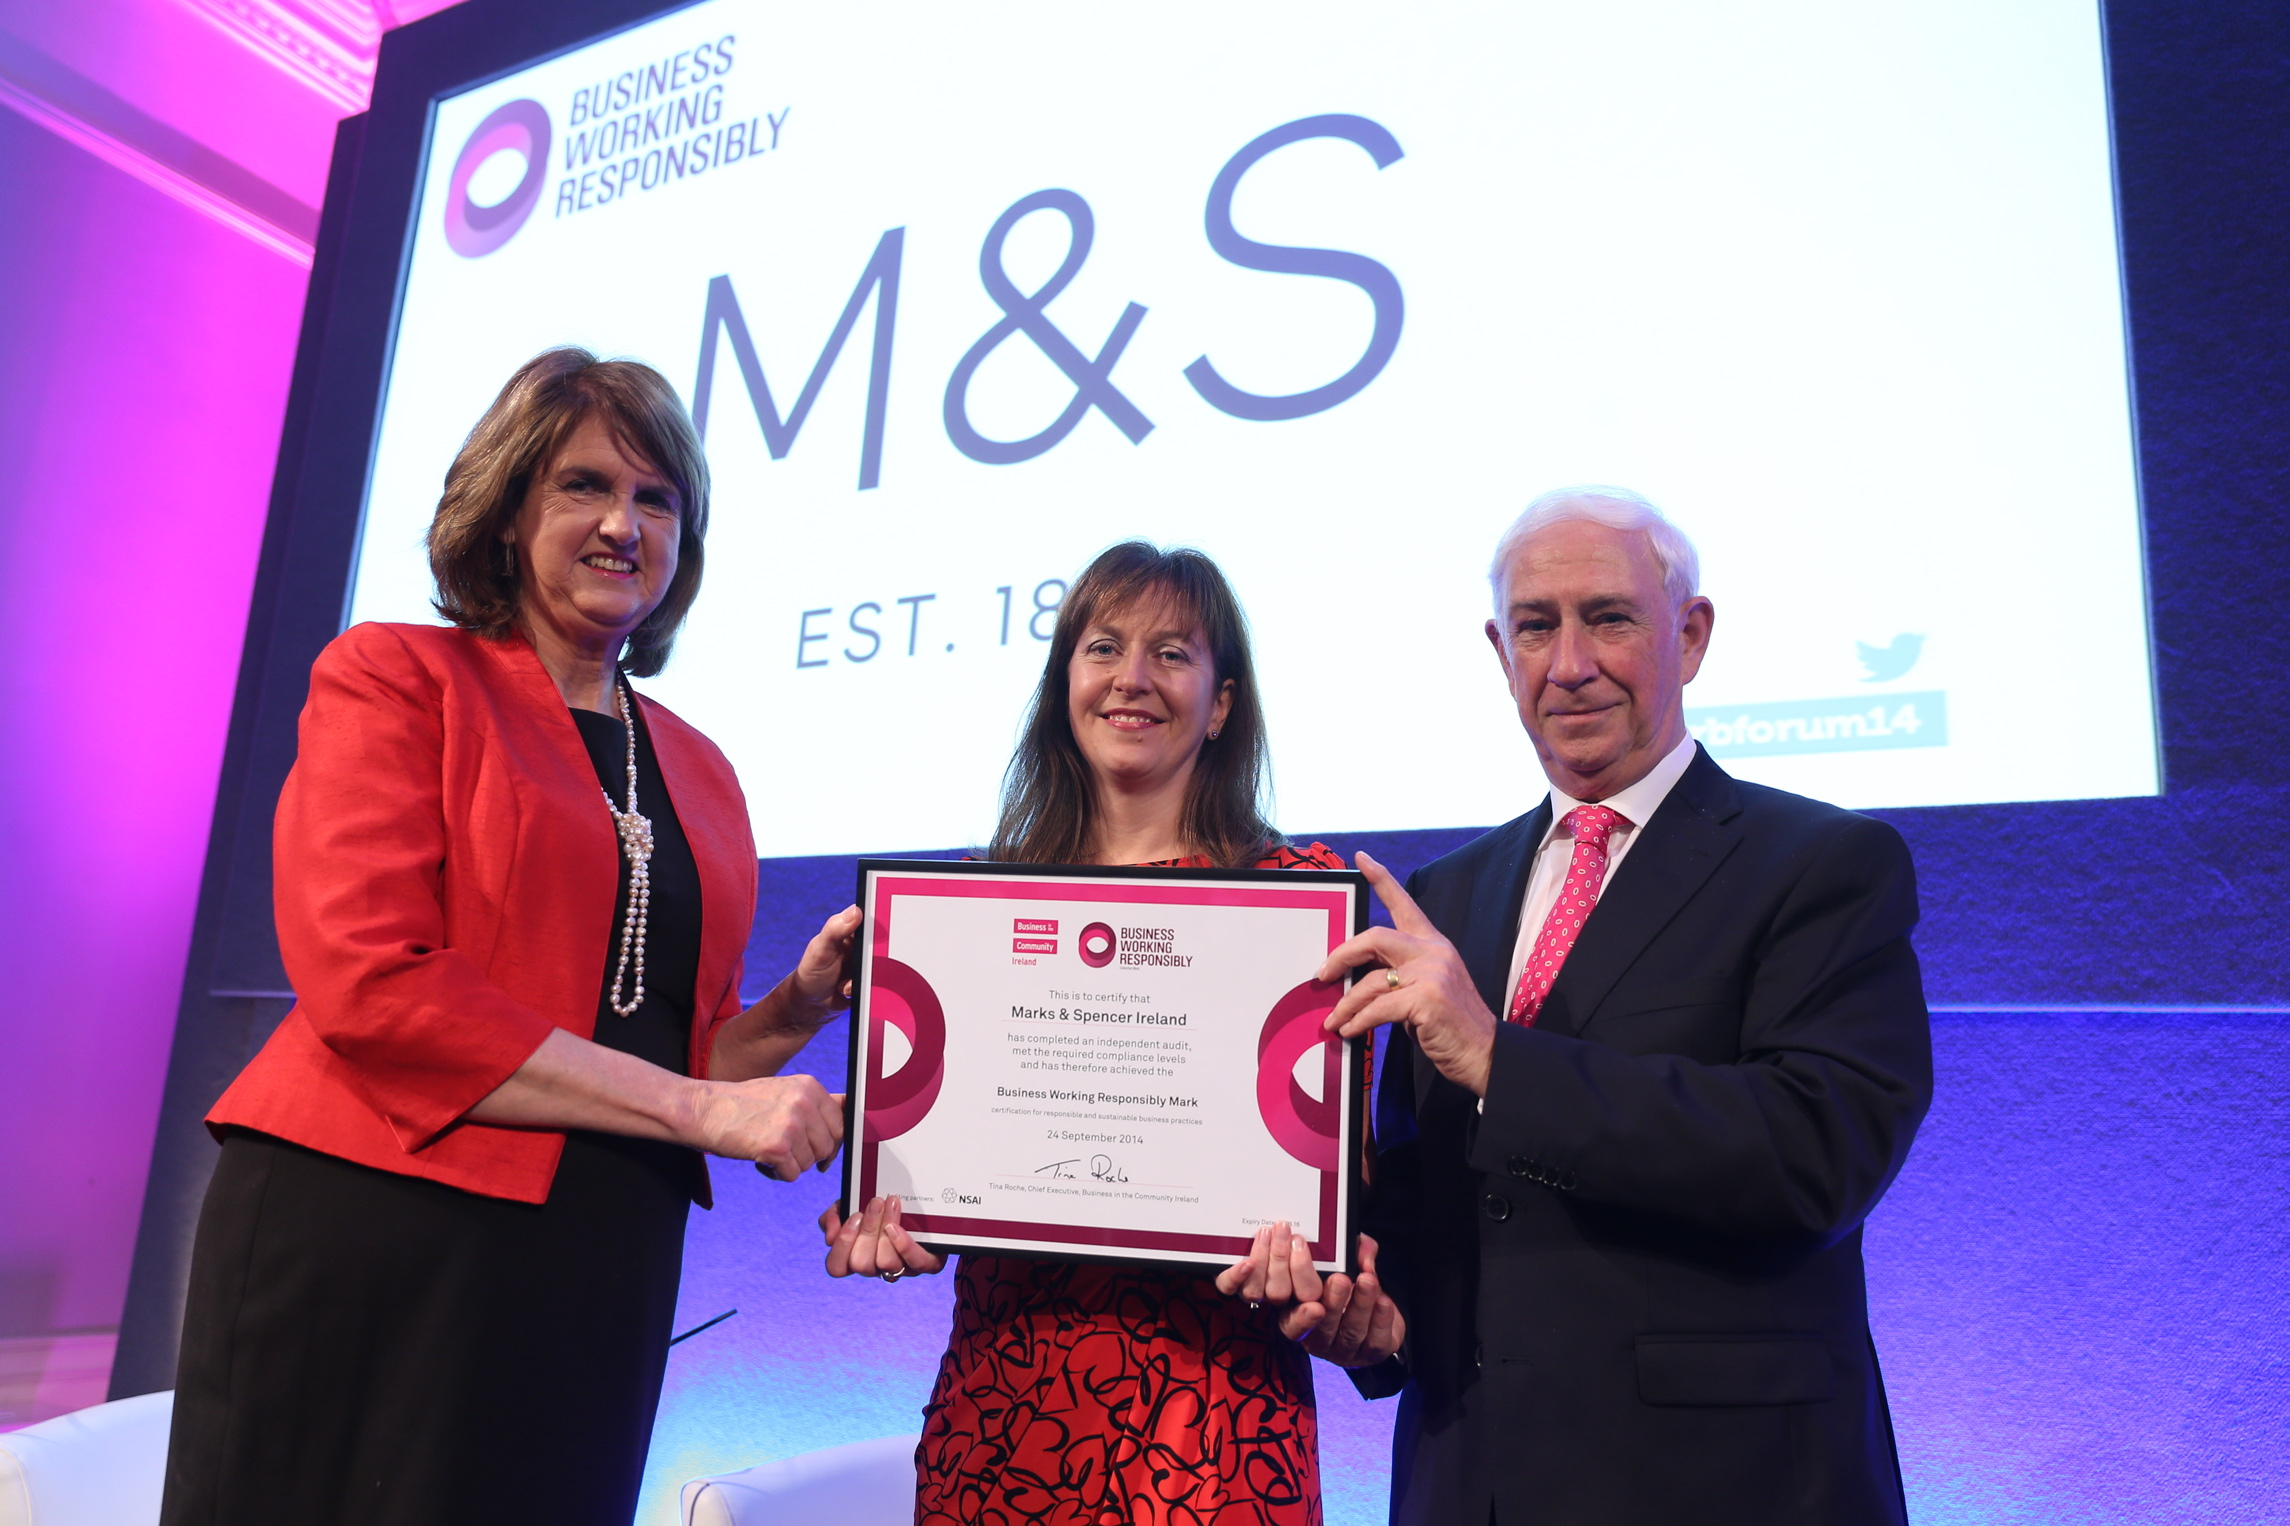 marks spencer csr article Background to the marks & spencer if you enjoyed this article, subscribe to receive more just like it the writepass journal.